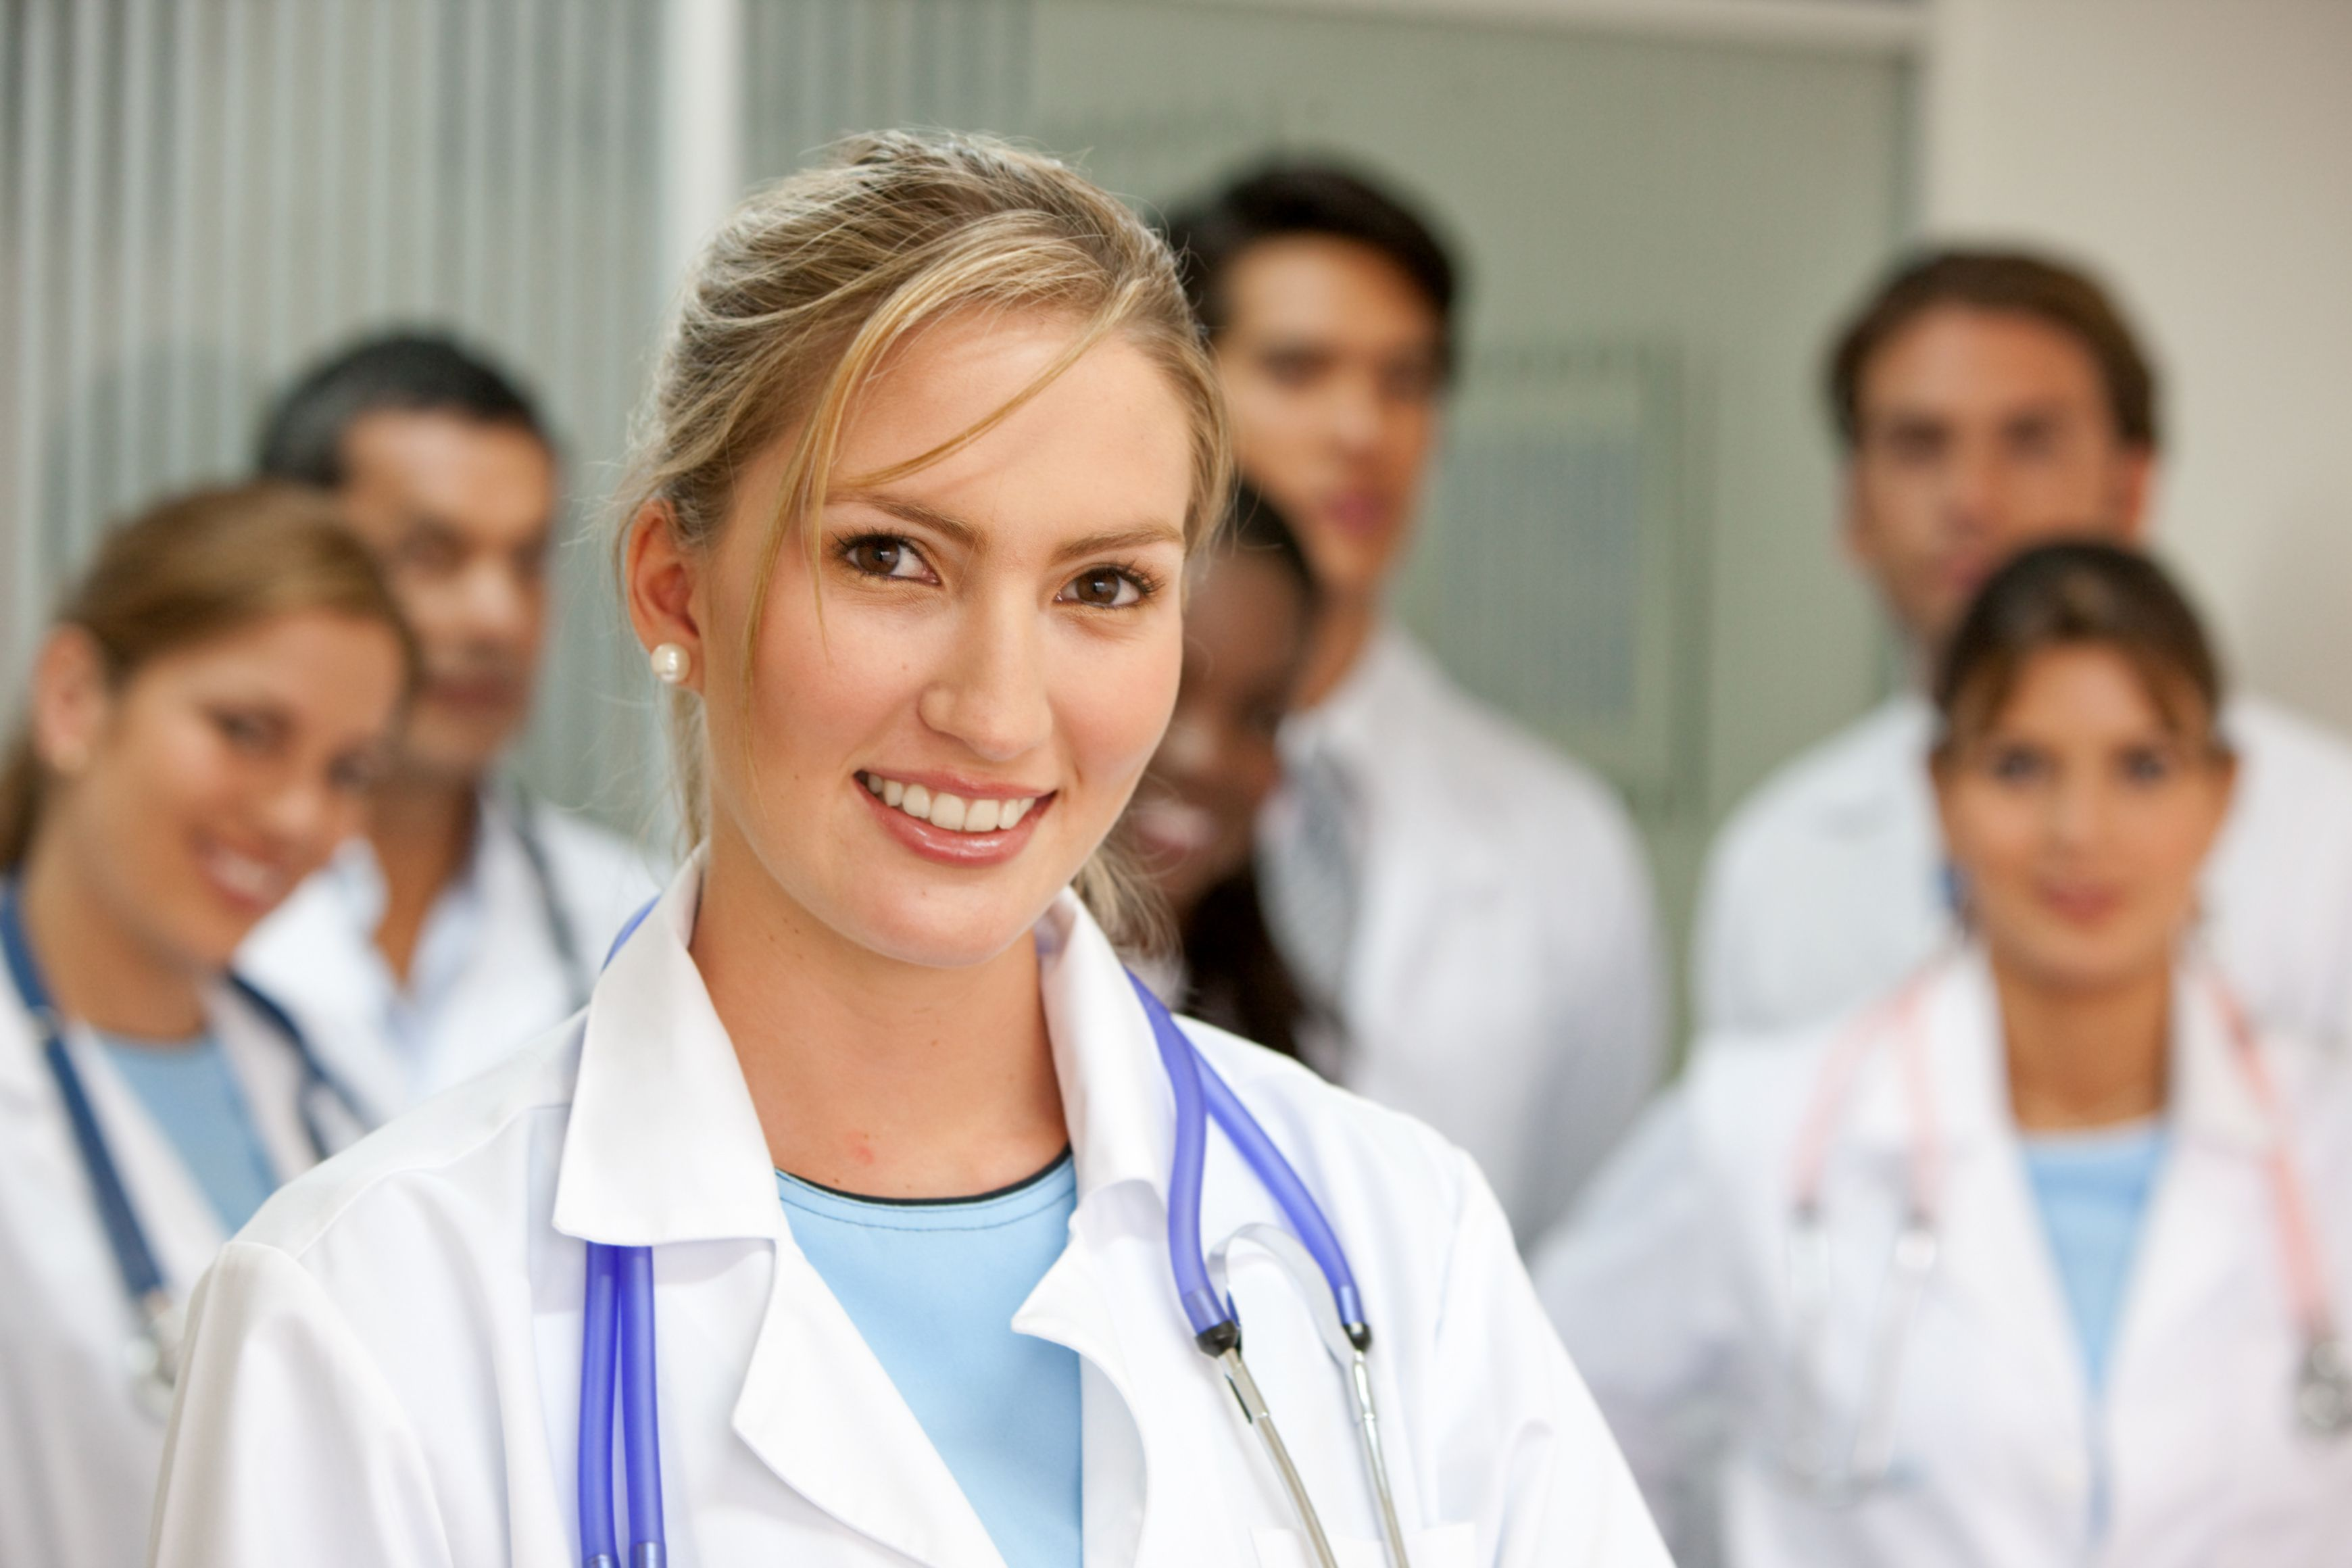 Nursing Department | Nurse Stock Photos | Nurses day, Internal medicine